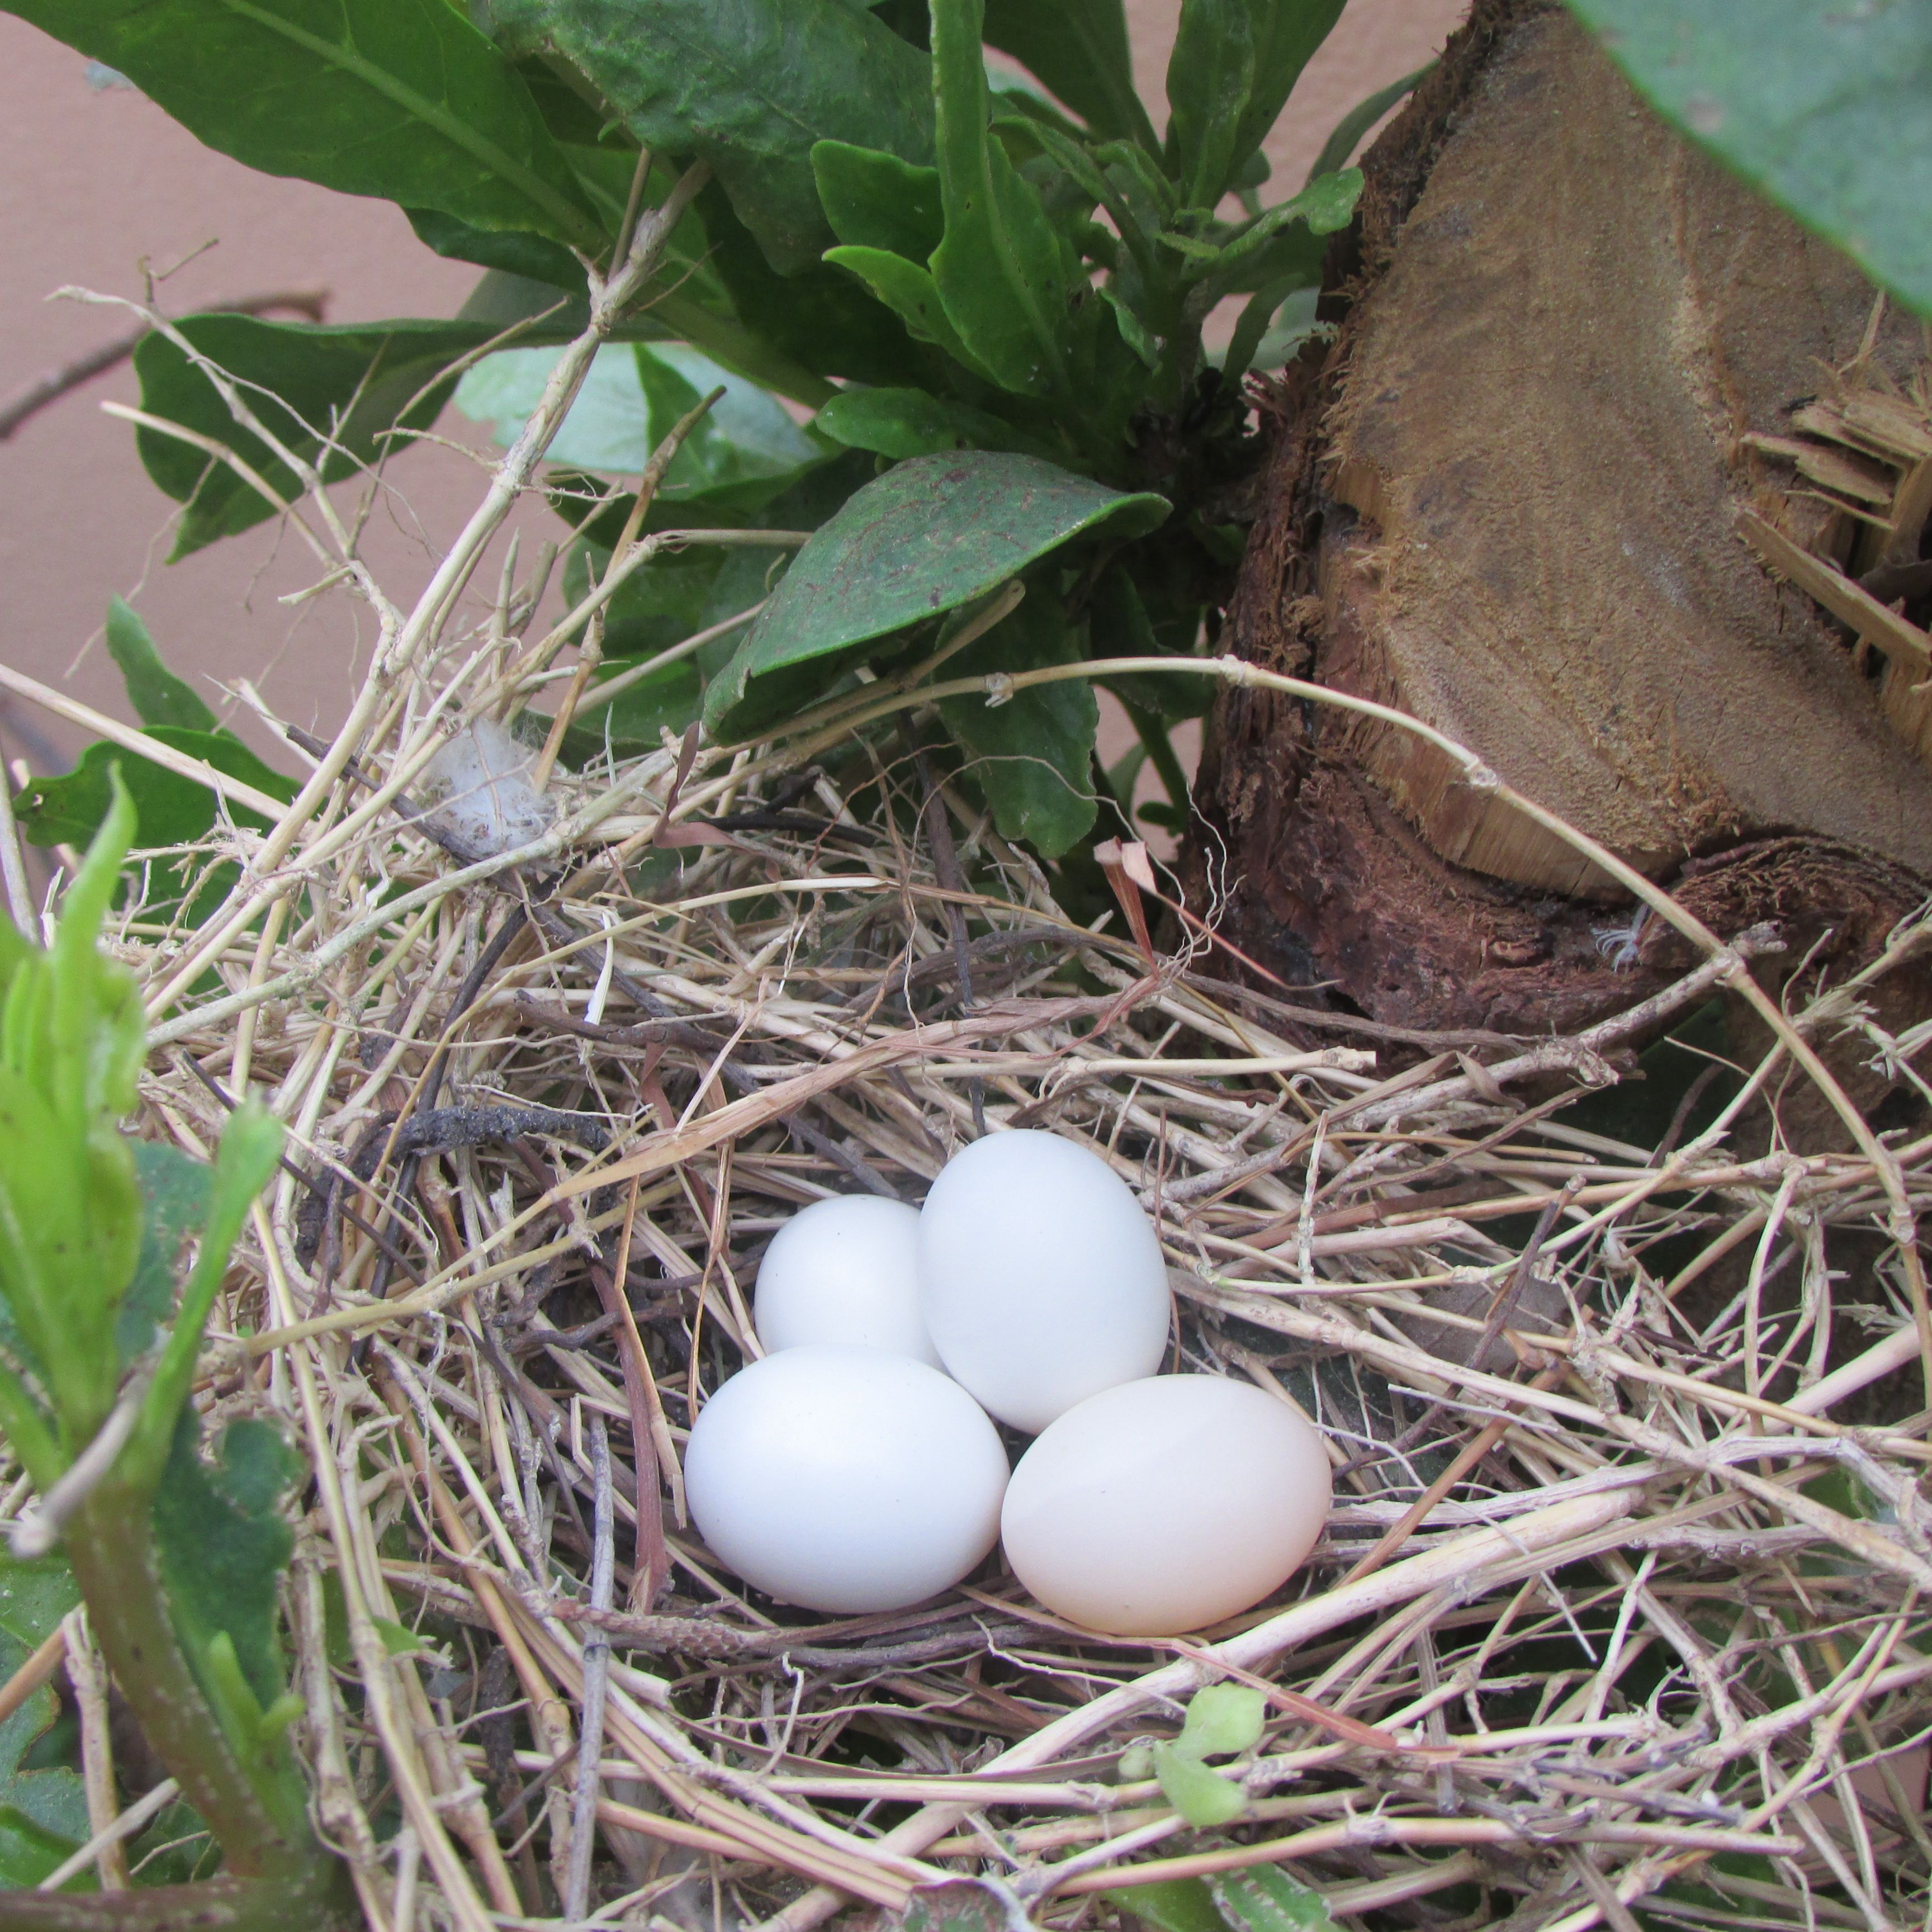 Four diamond dove eggs from two different pairs in one nest. Two eggs belong to Chicharo (blue pied male diamond dove) and Ginger (ultimate red/red female diamond dove) and the other two eggs to Cider (ultimate red/red male diamond dove) and Avena (silver female diamond dove).  Take a close look at the picture. If you can see, one of the eggs (probably the first one that was most probably laid by Ginger) is slightly red in the picture. It will hatch very soon! :D